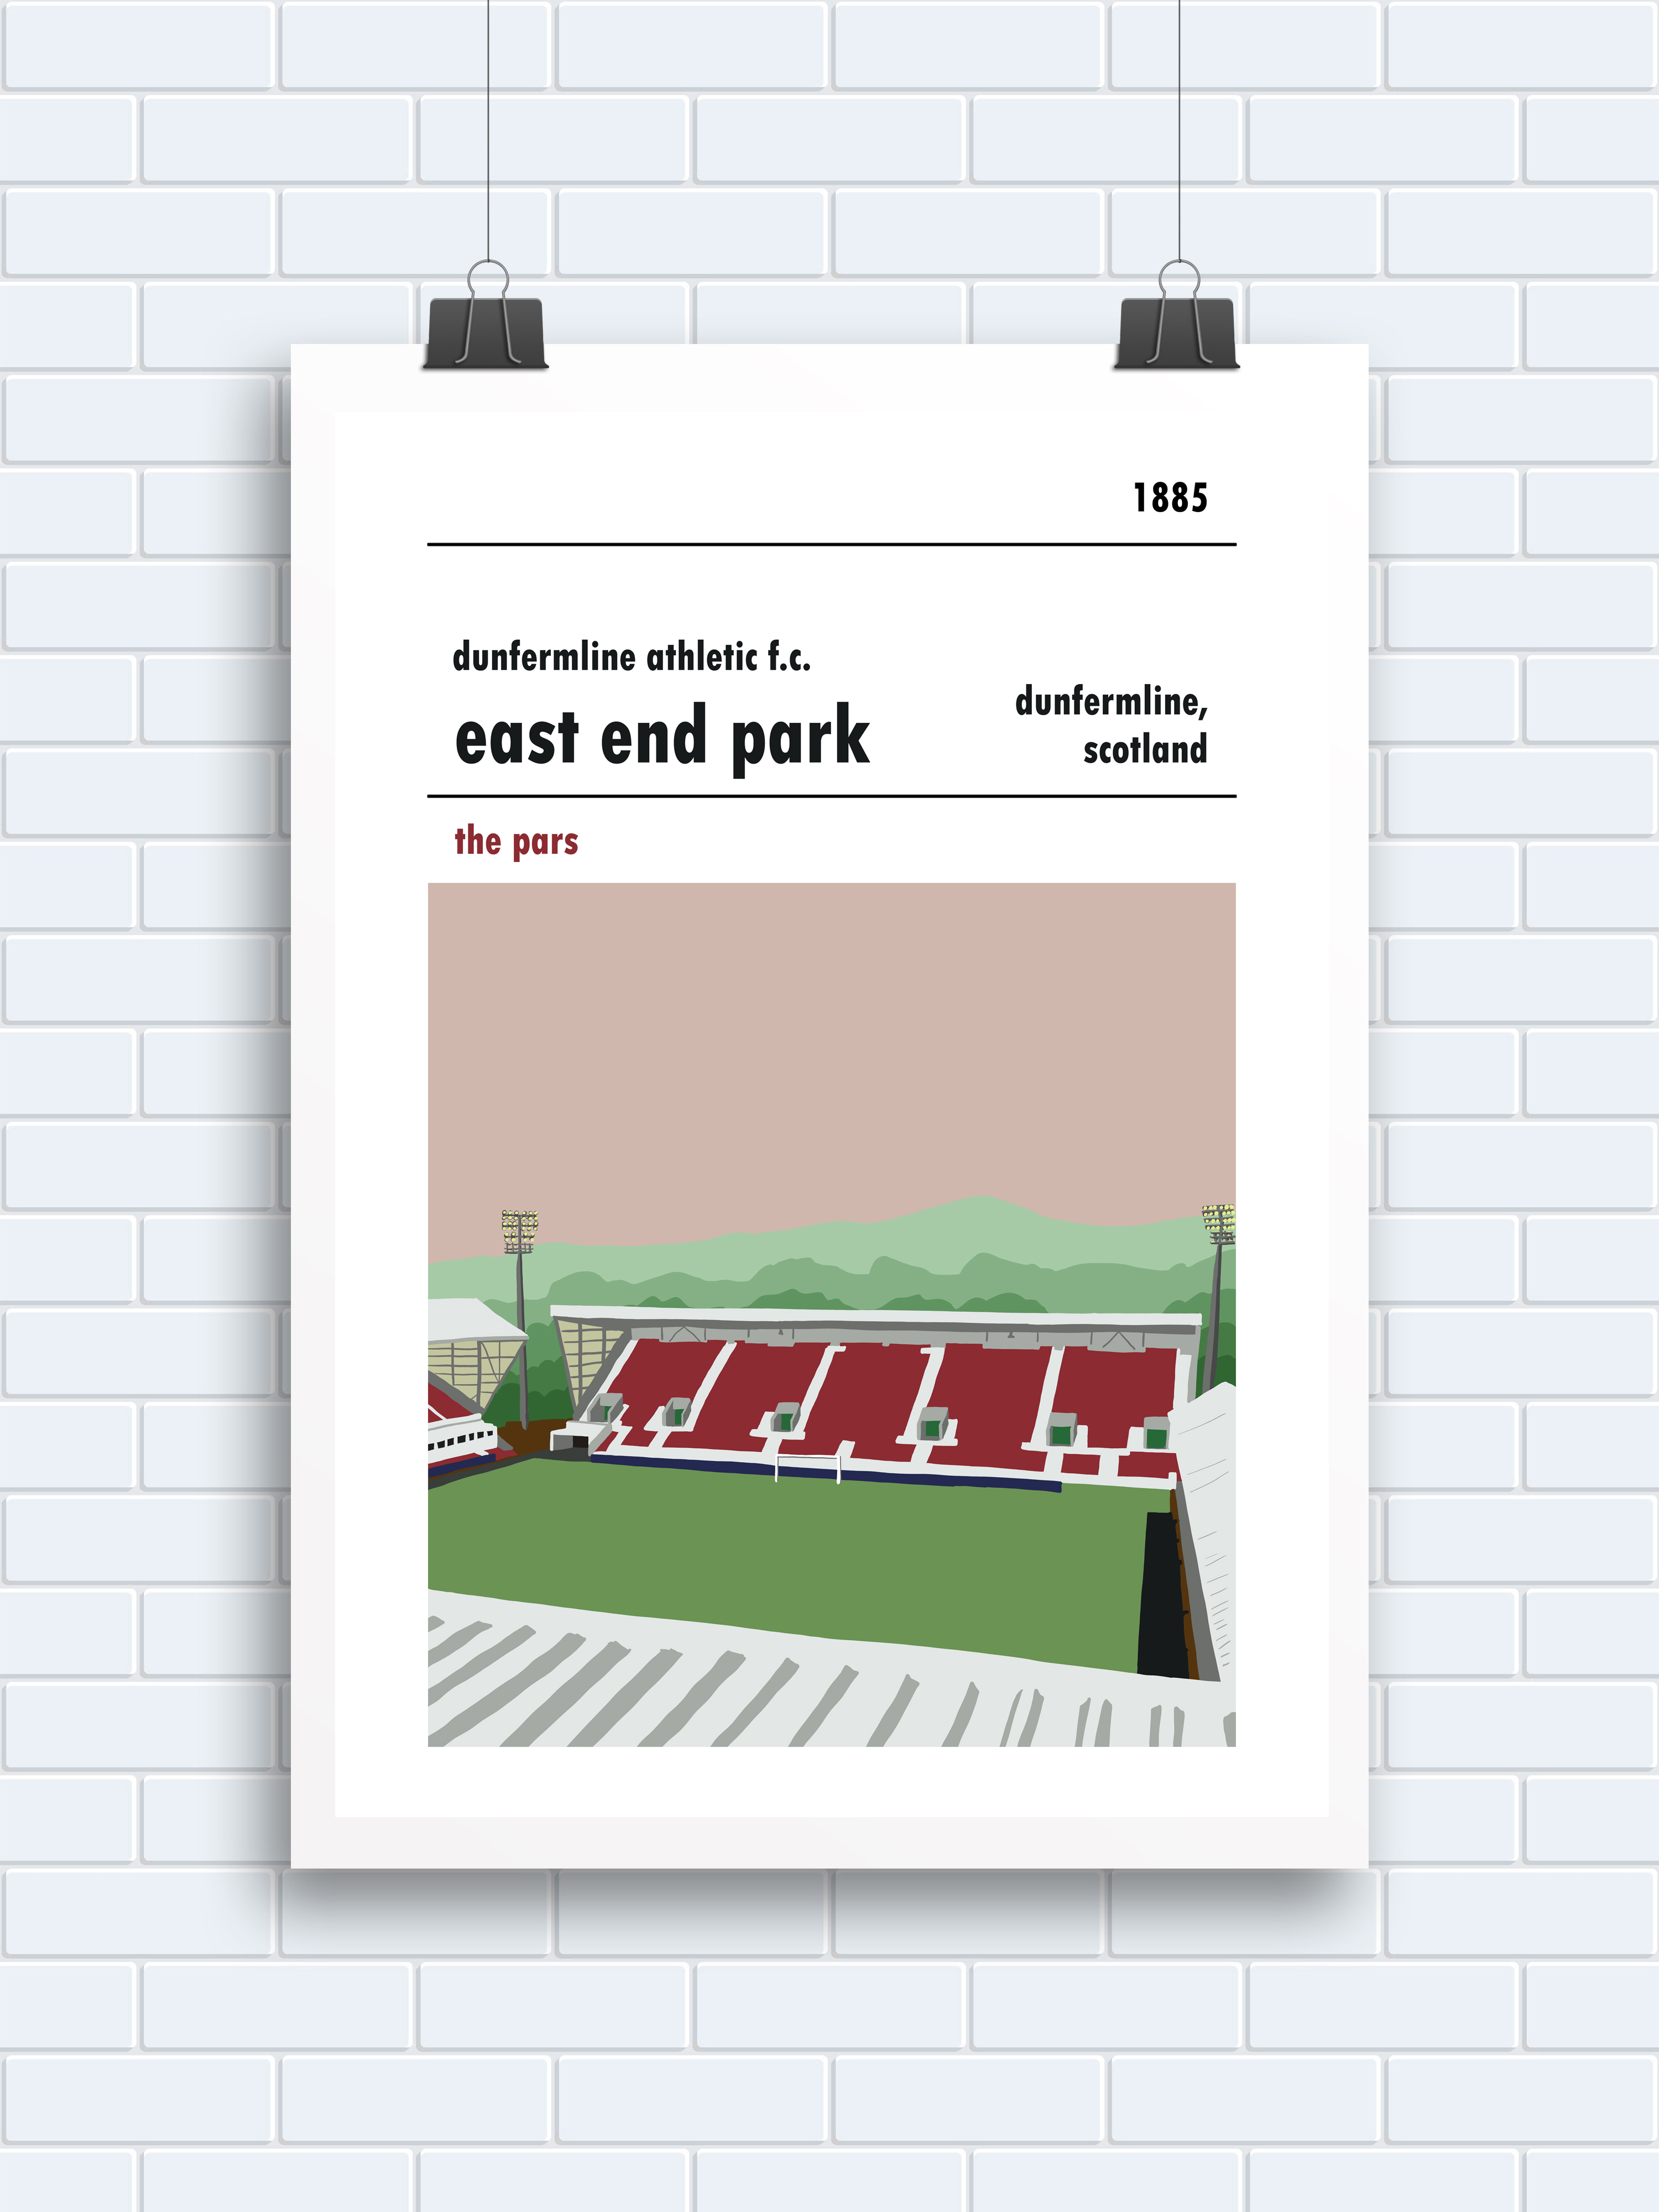 East End Park, Dunfermline. Stadium